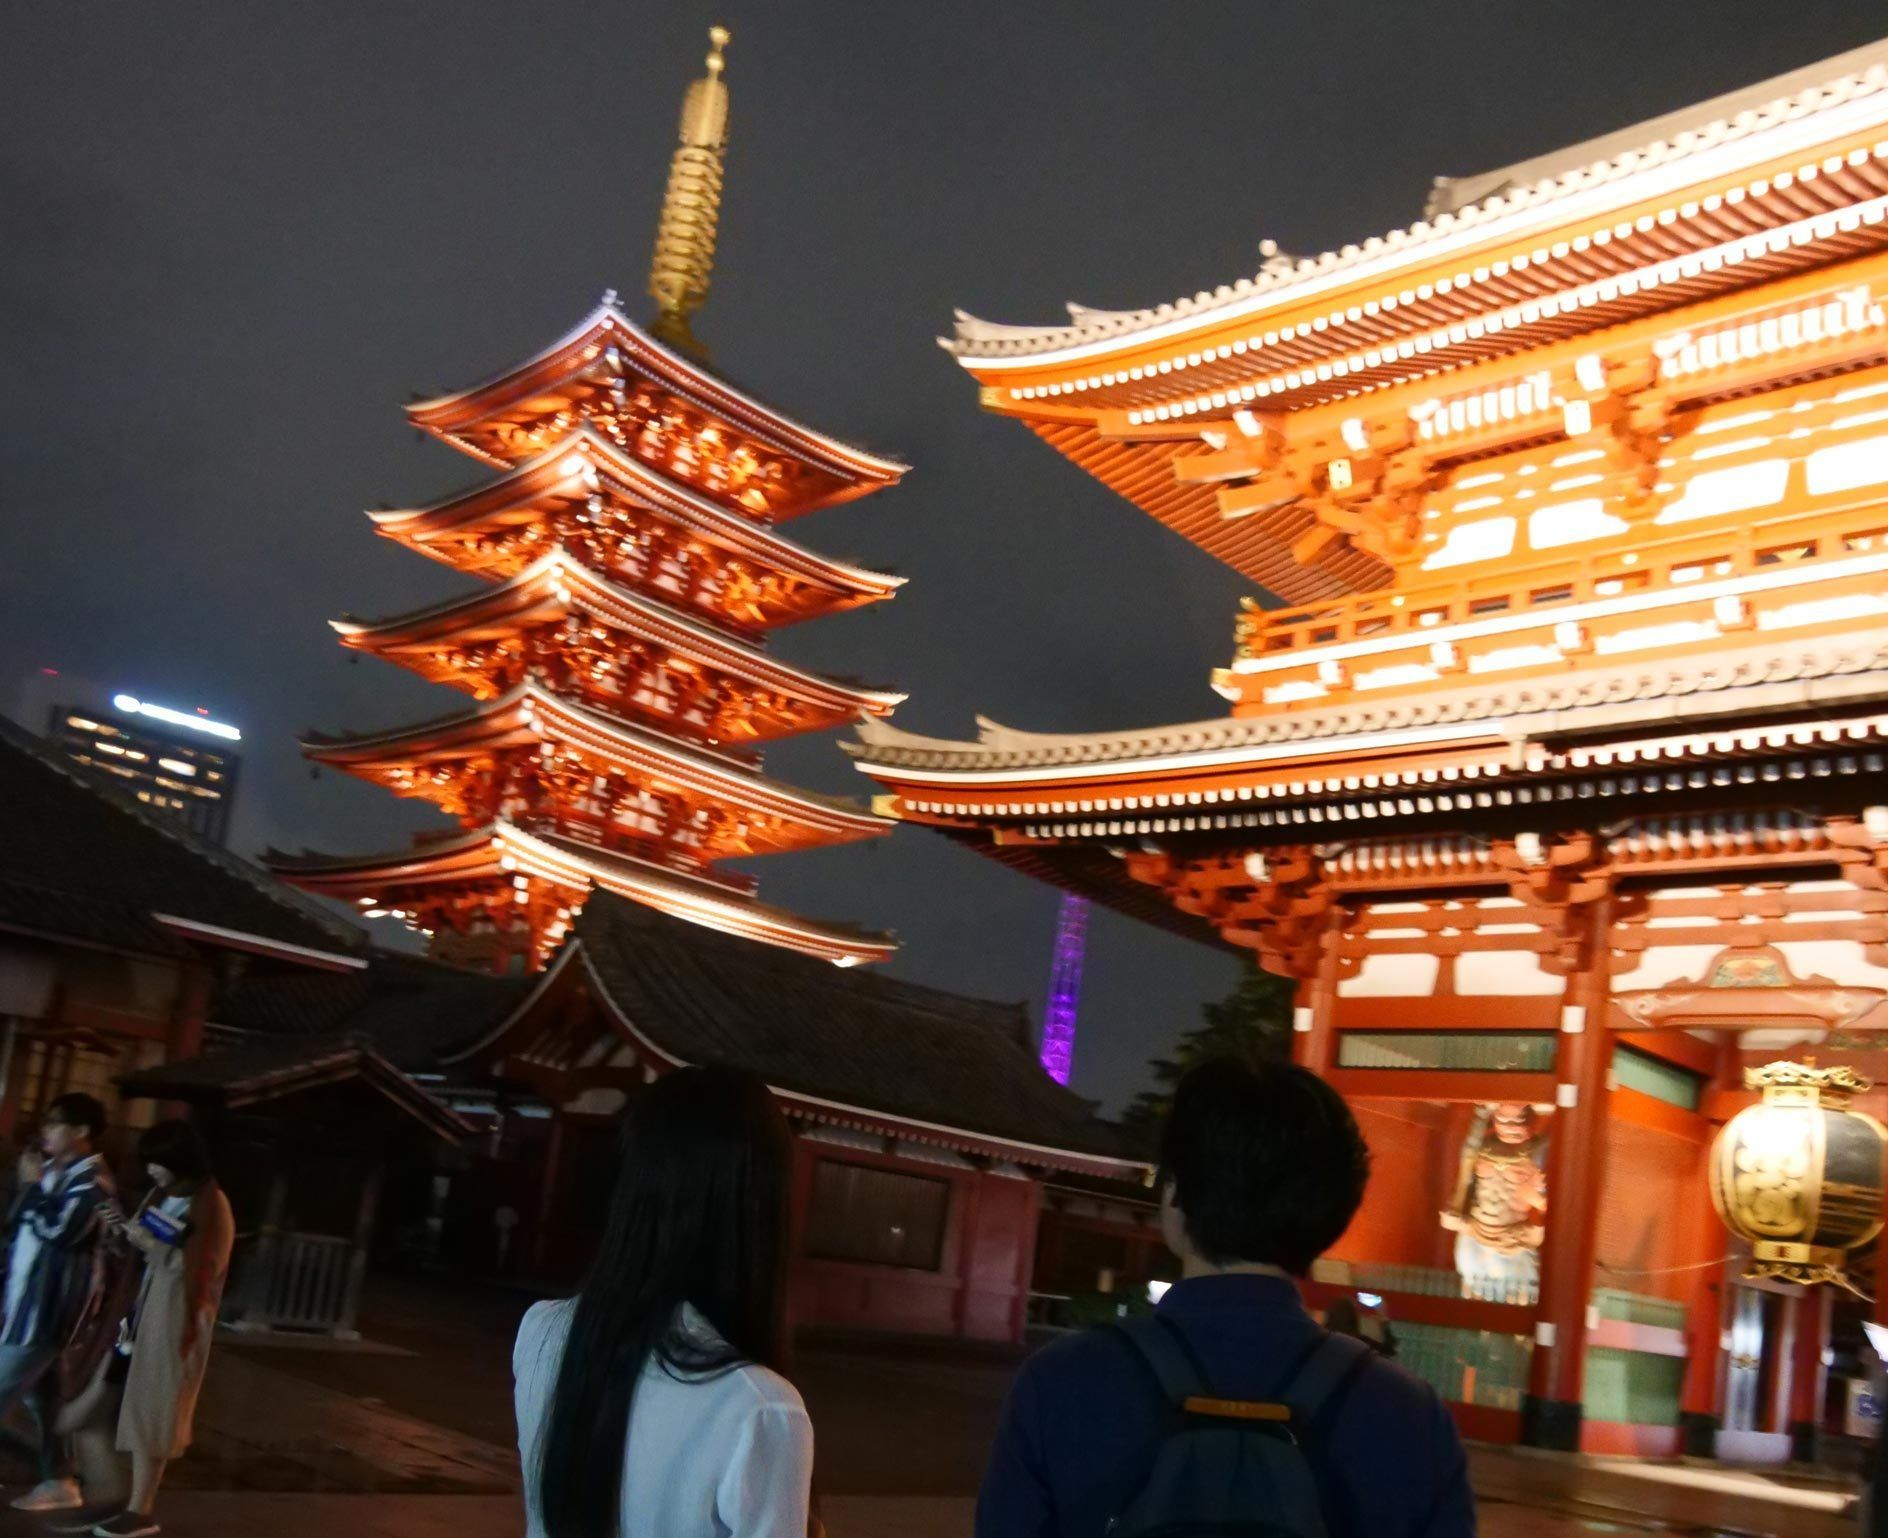 Night view of Sens?-ji, an ancient Buddhist temple located in Asakusa